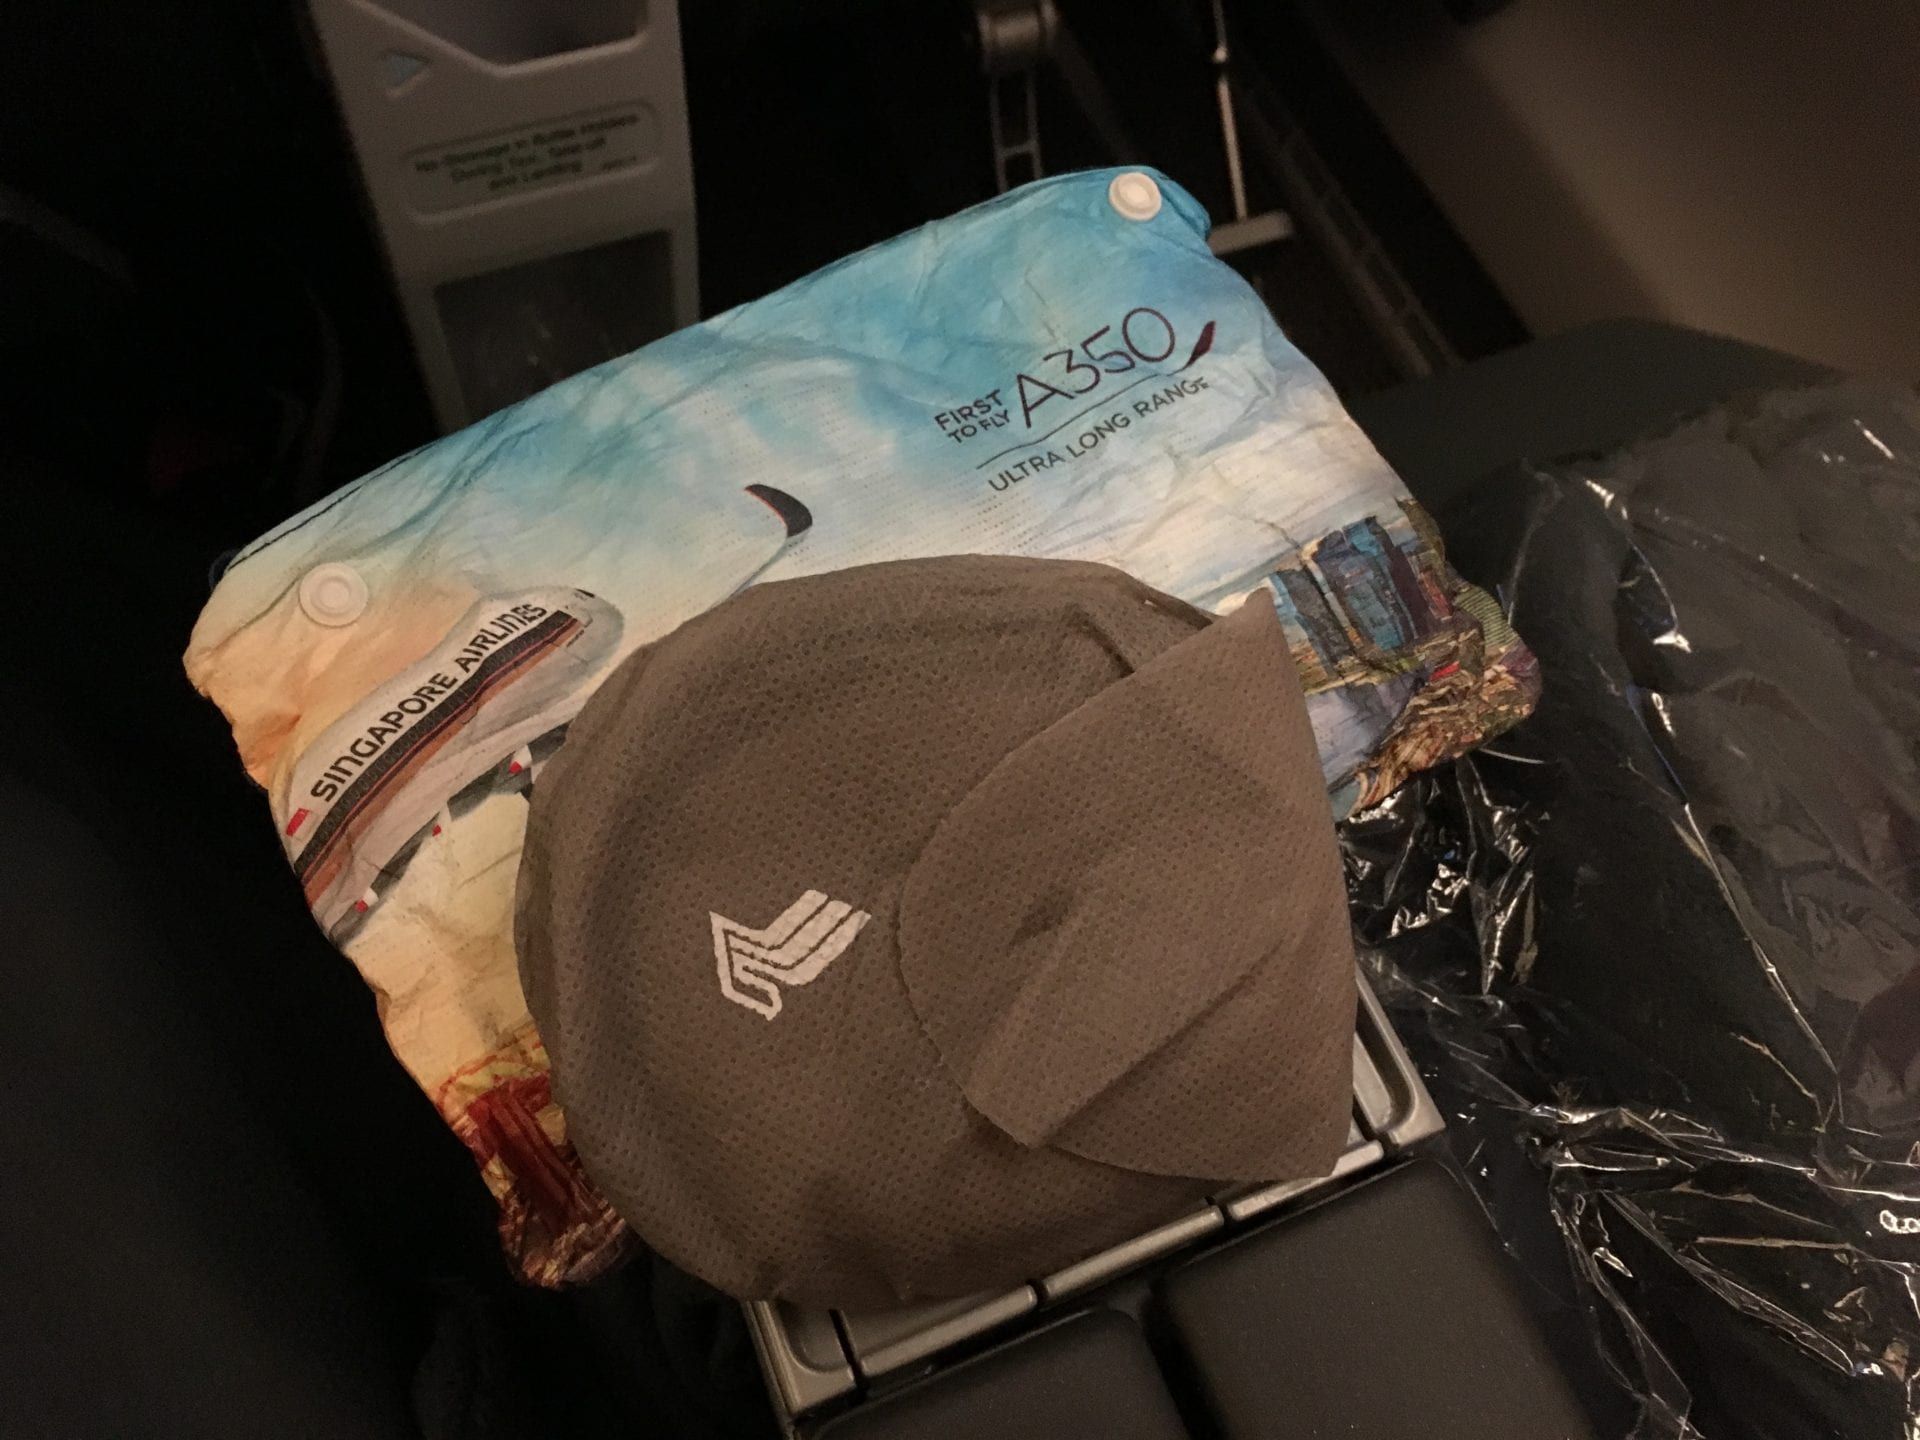 Singapore Airlines Premium Economy Class Ultralangstrecke Amenity Kit